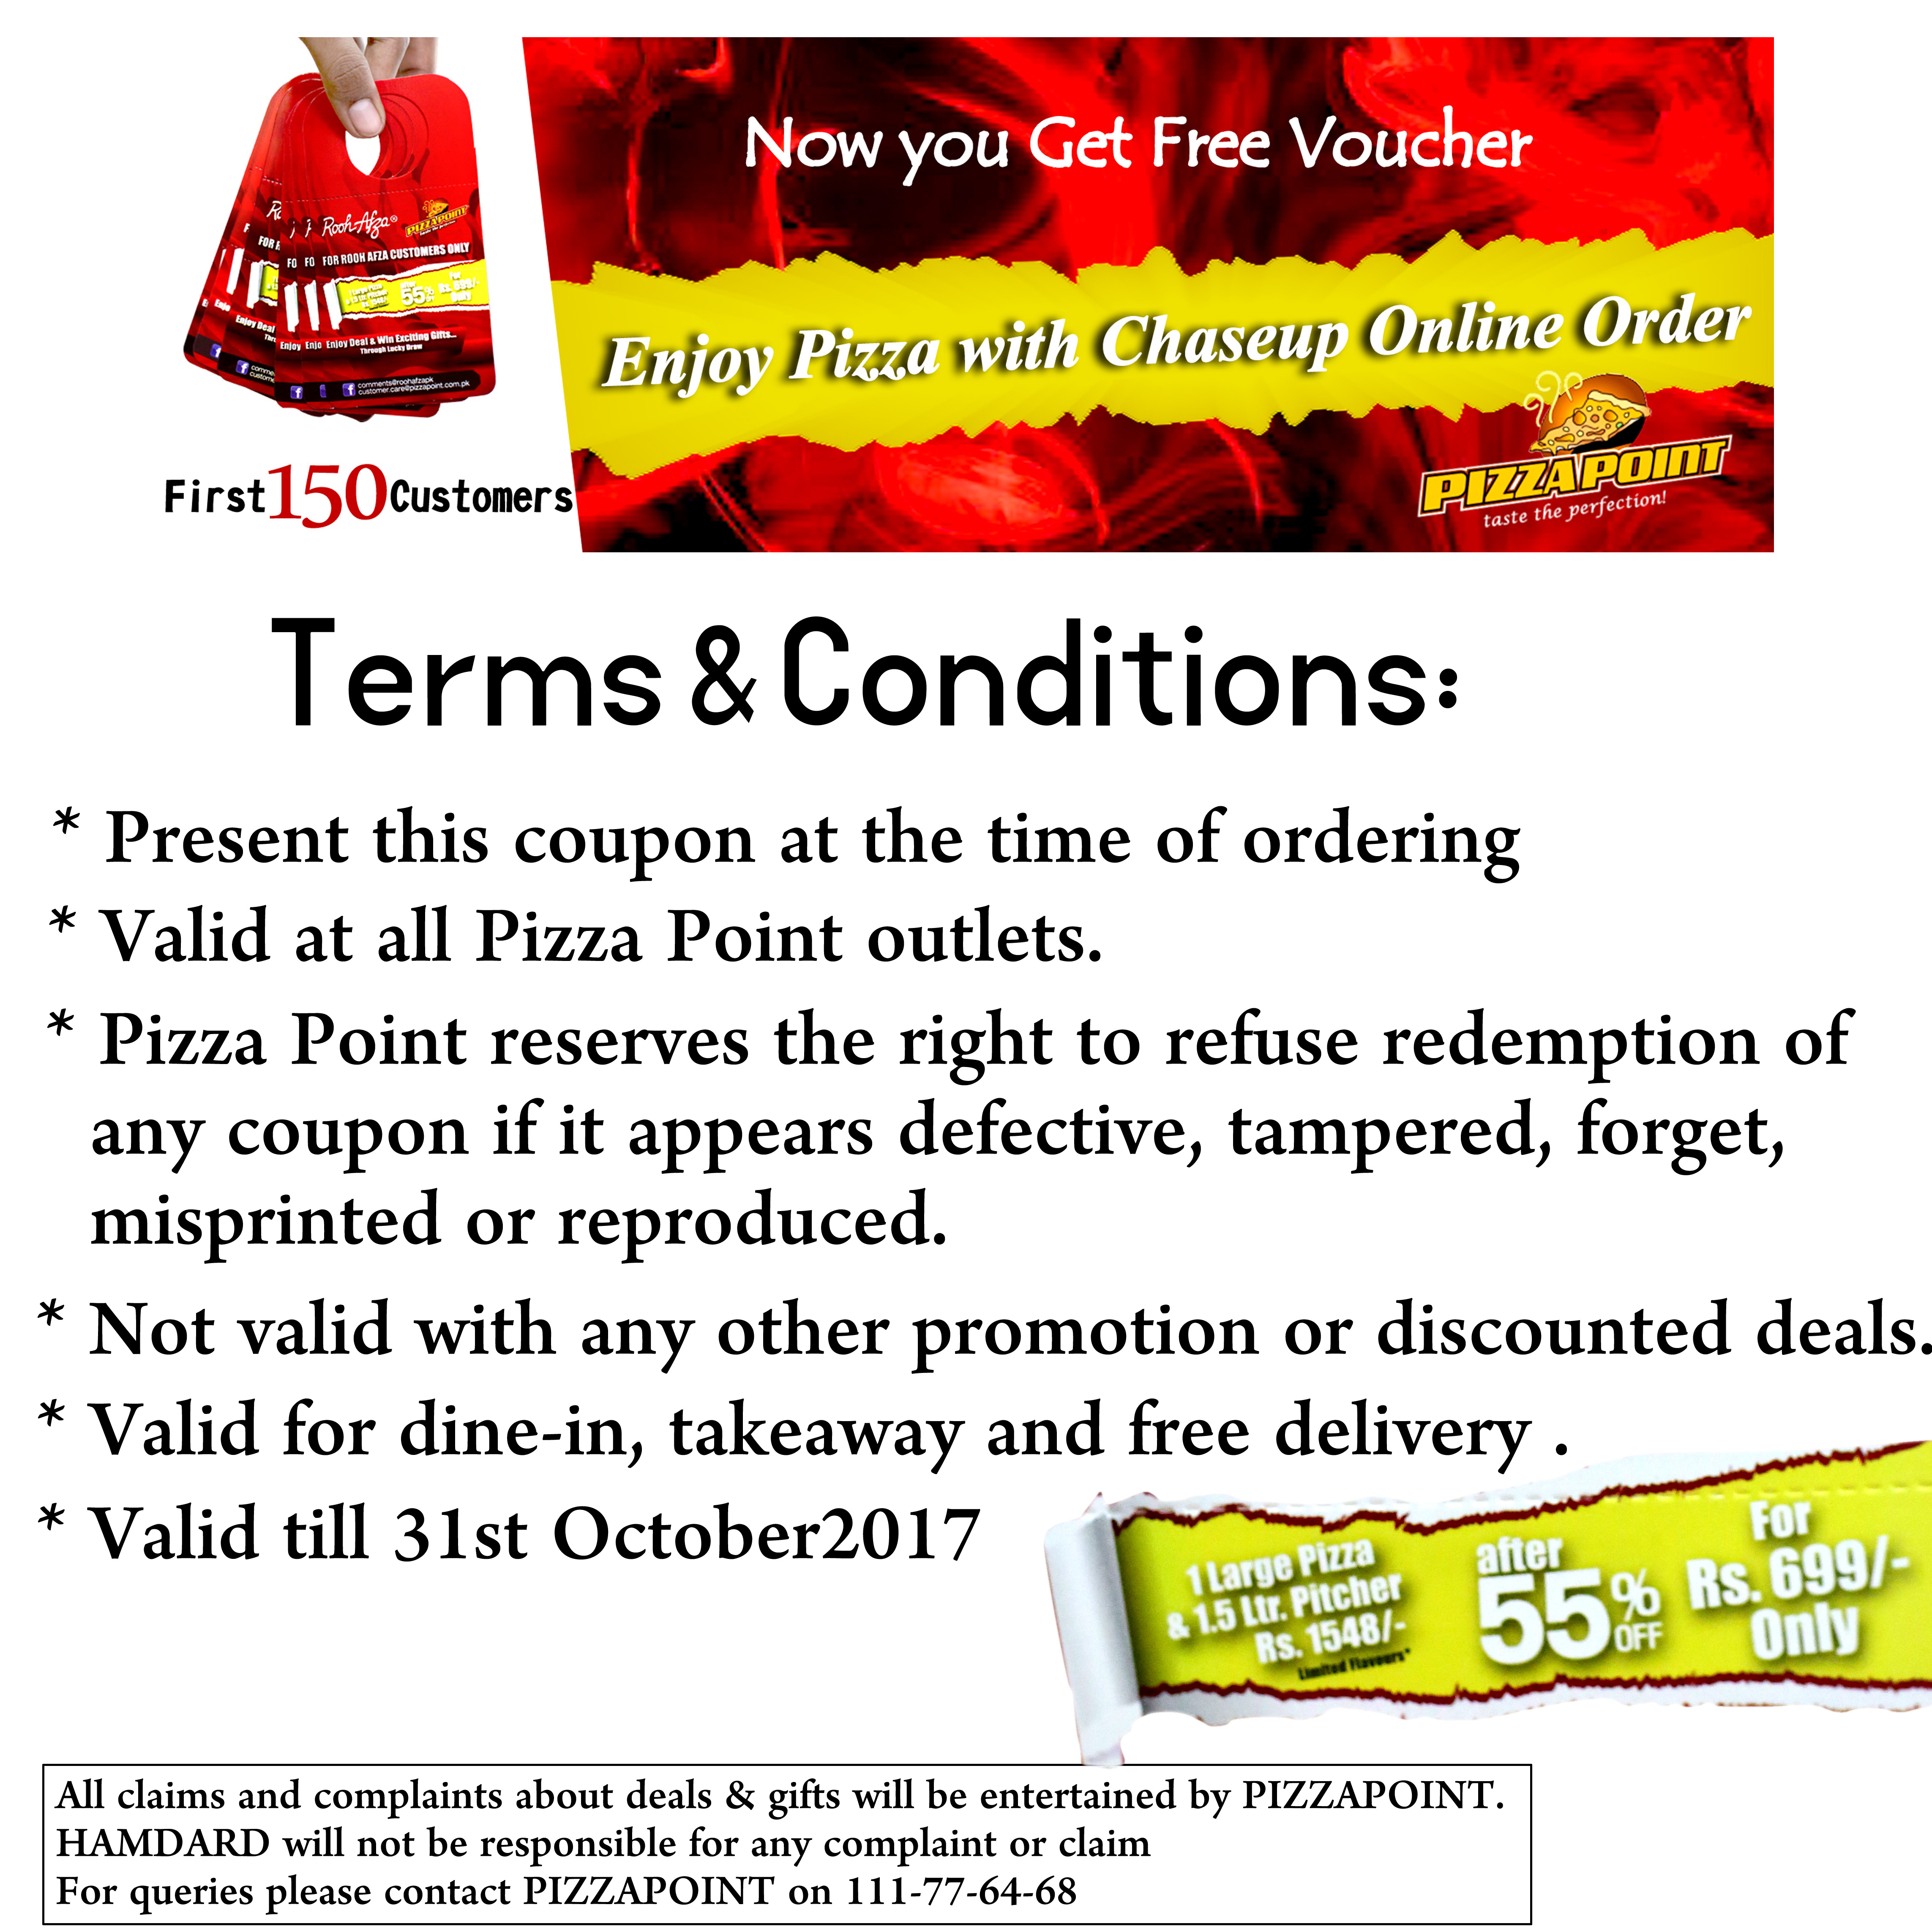 NOW YOU GET FREE VOUCHER ENJOY PIZZA WITH CHASEUP ONLINE ORDER